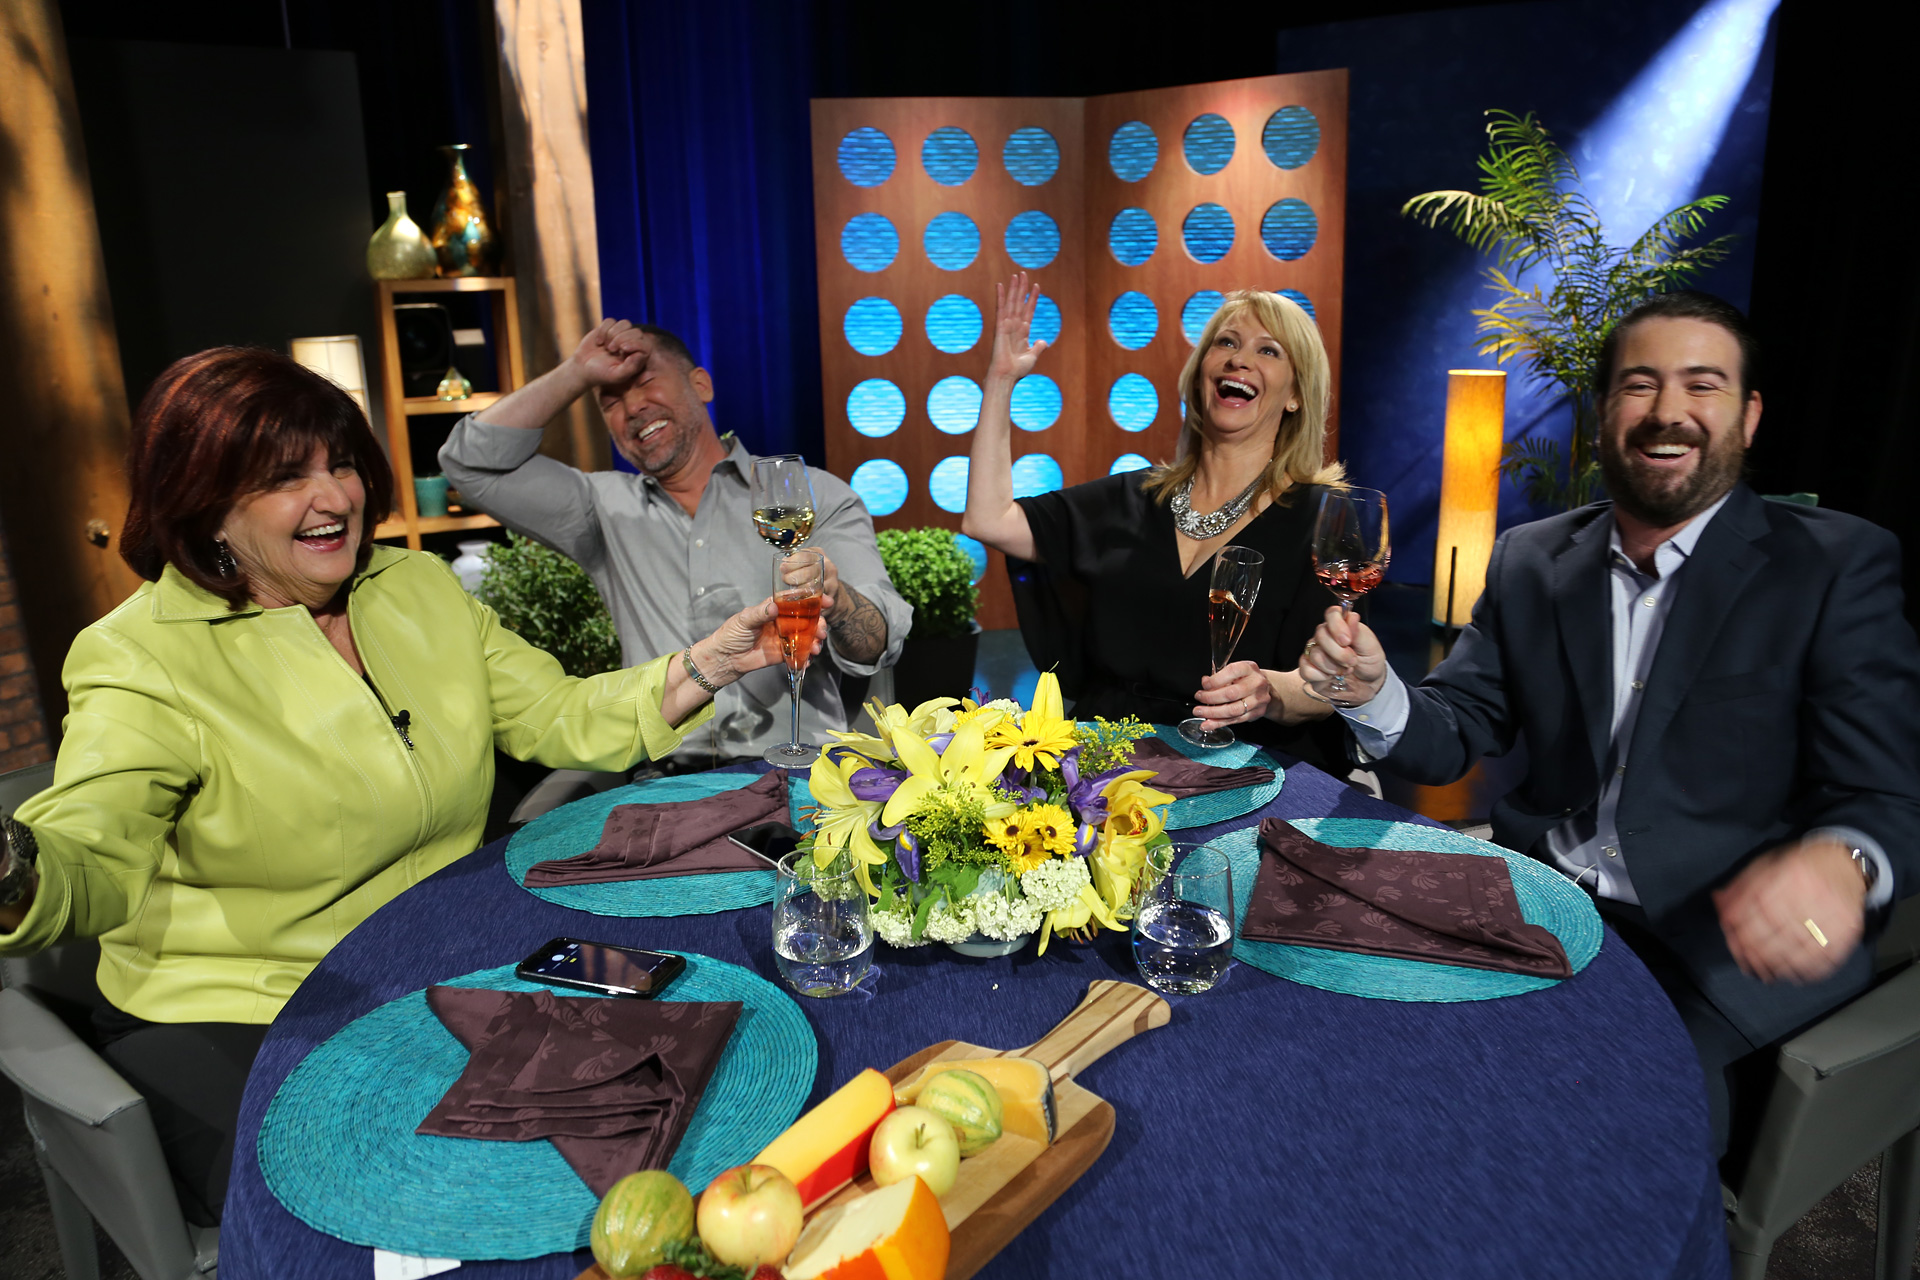 Host Leslie Sbrocco and guests having fun on the set of the episode 16 of season 11.